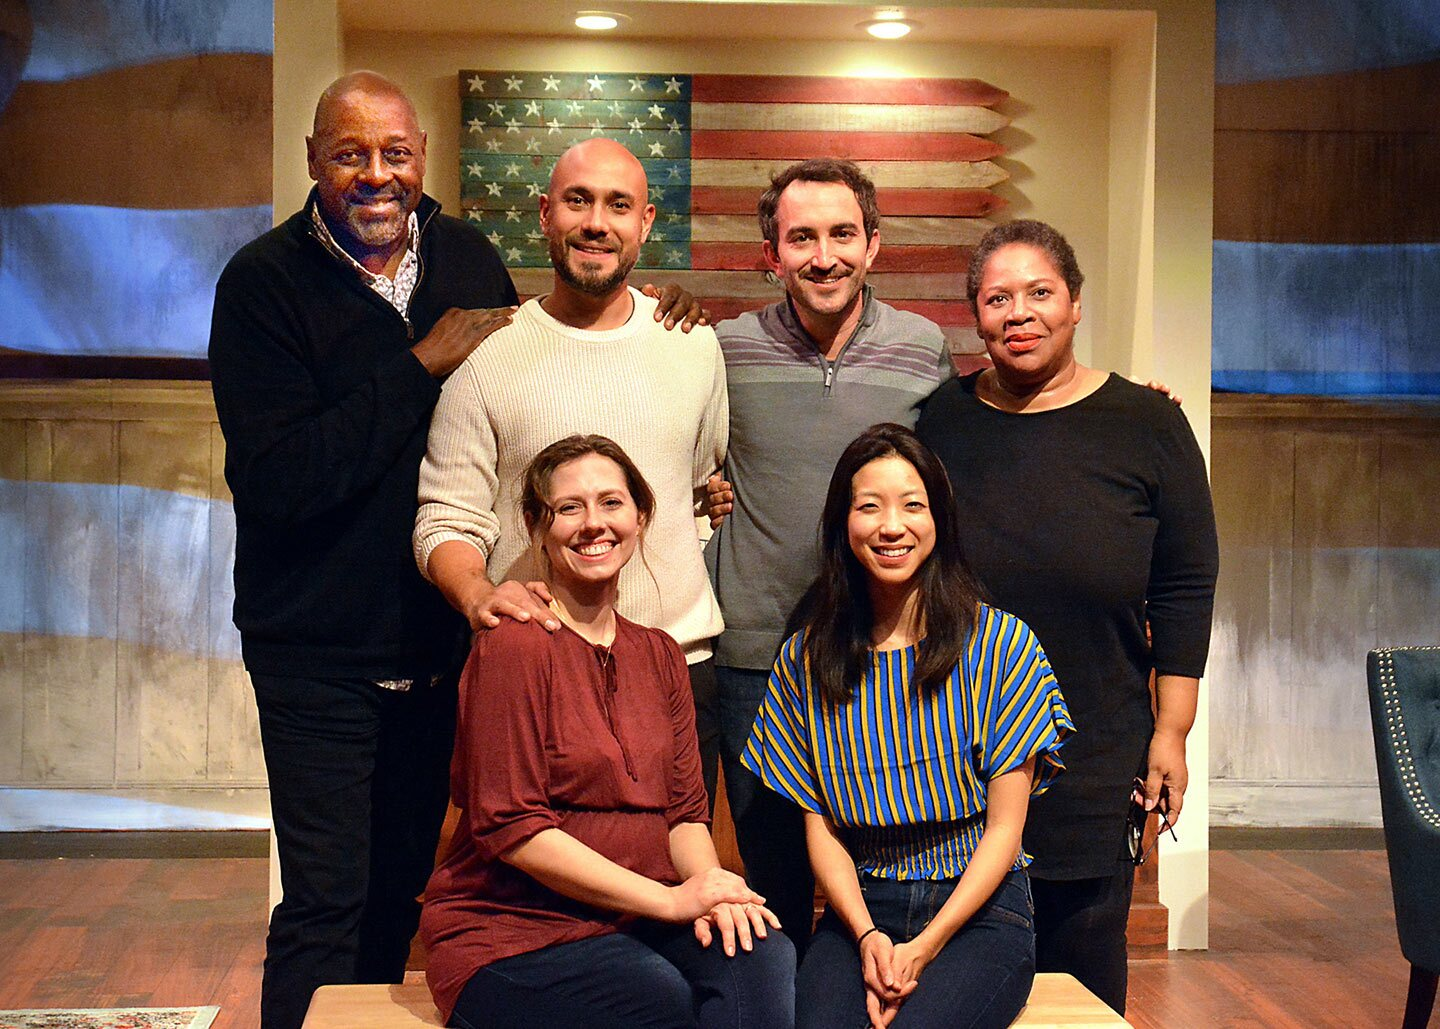 Clockwise from top left: Director Michael A. Shepperd, actors Andres M. Baggs and Clayton Farris, writer Penelope Lowder and actors Allison Blaize and Jenny Soo. | Ed Krieger